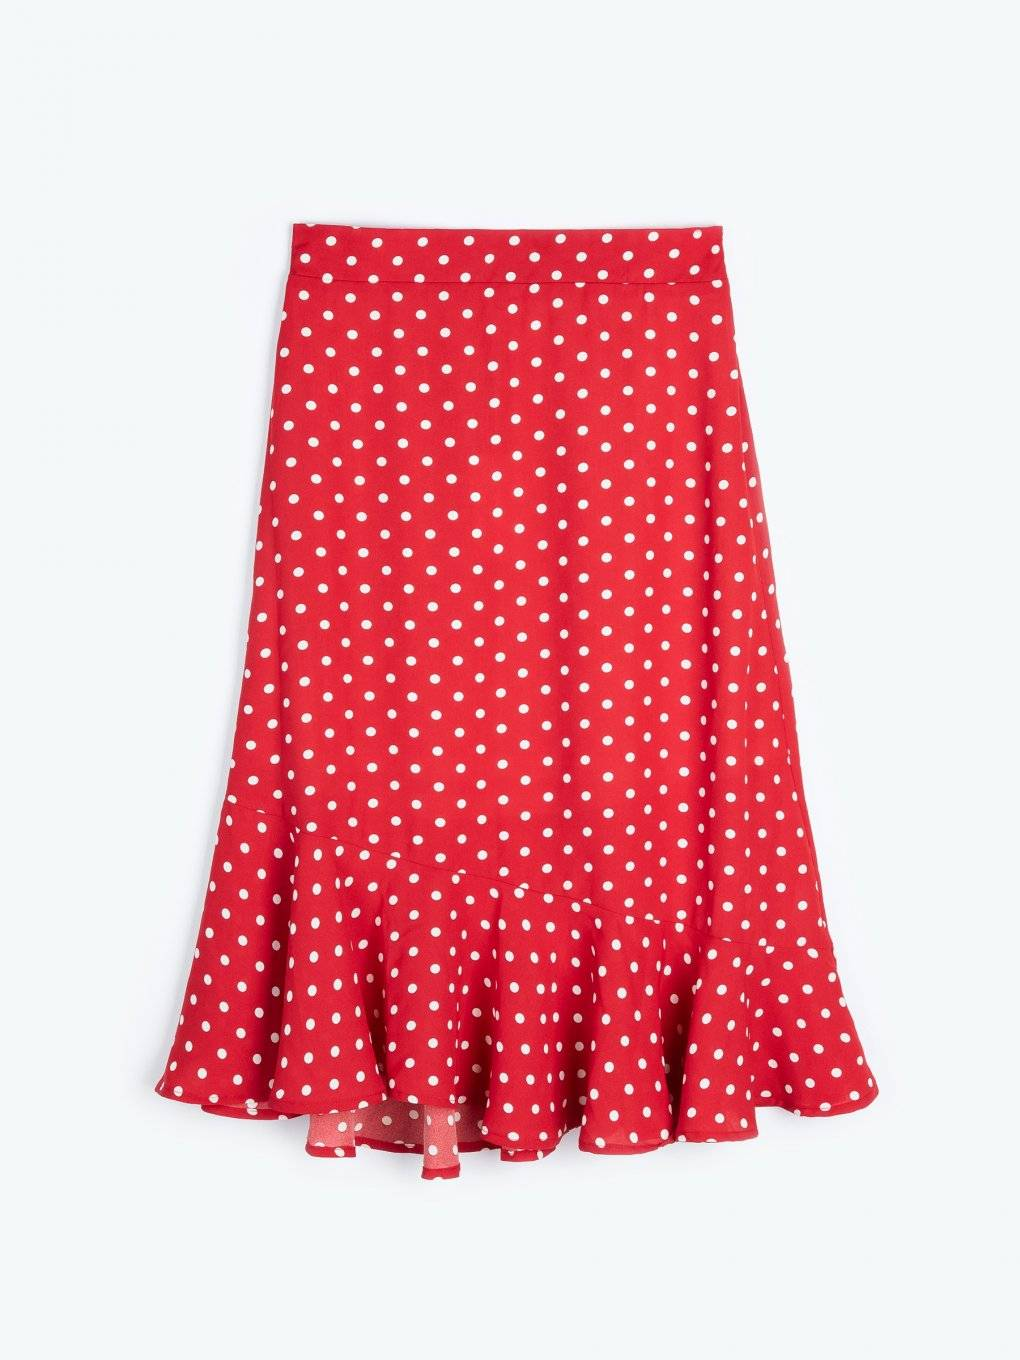 Polka dot print skirt with ruffle